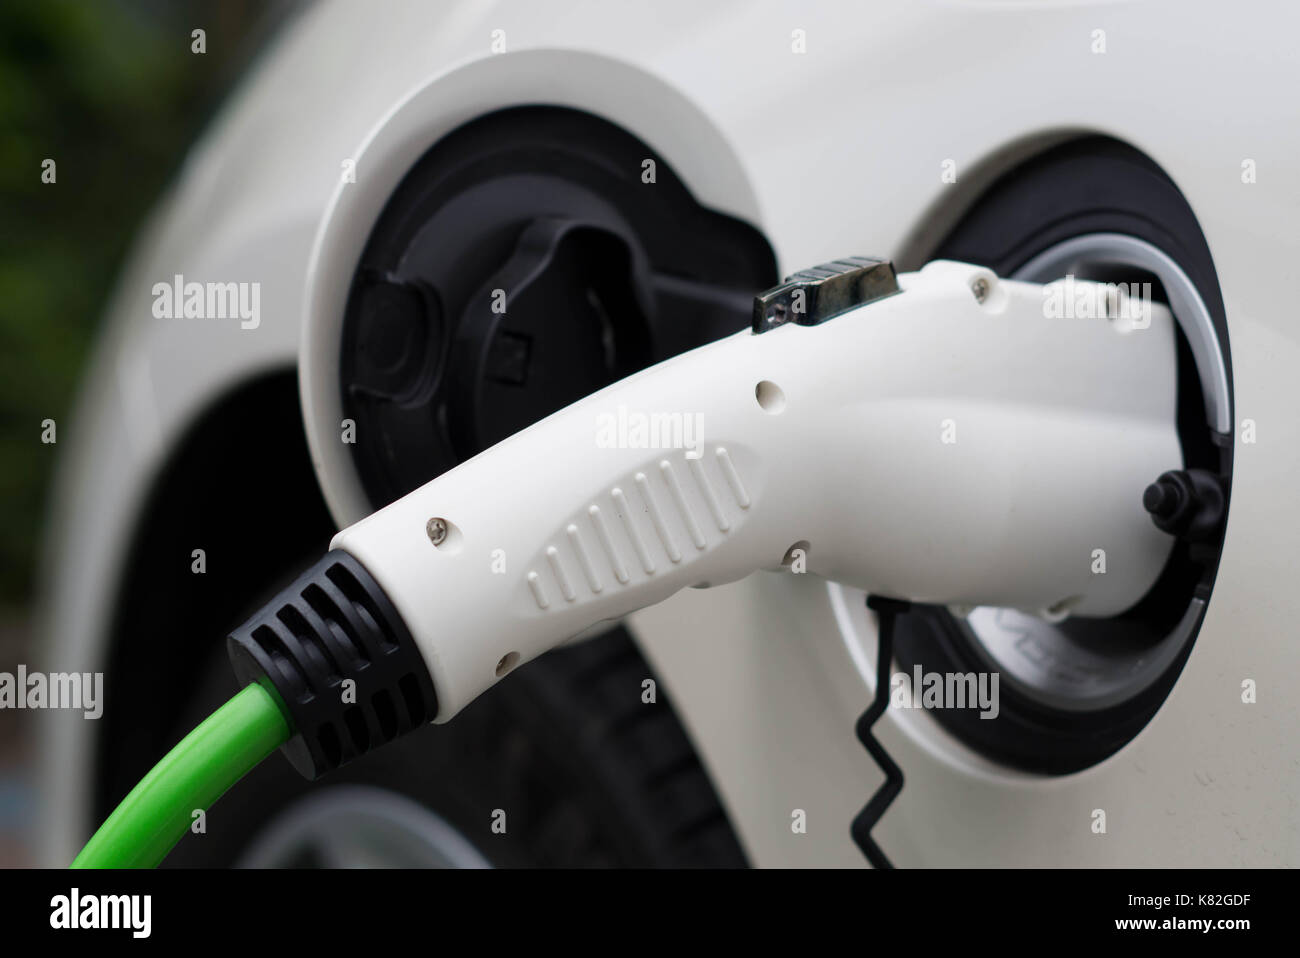 Electric car charging station. Close up of the power supply plugged into an electric car being charged. Stock Photo